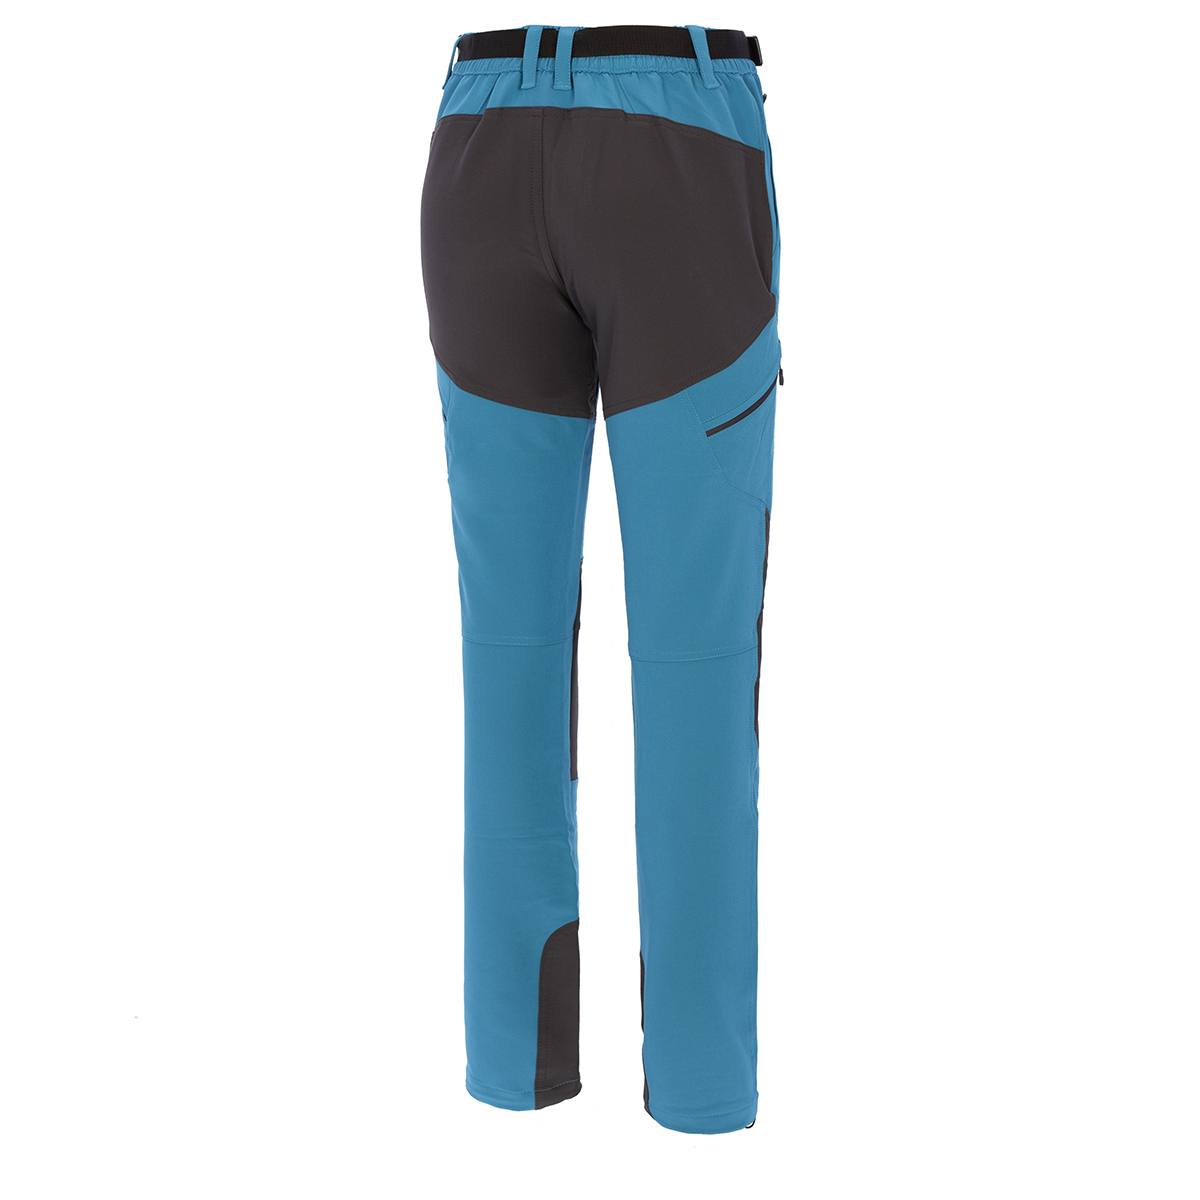 WOMAN'S DERA STRETCH PANT TURQUOISE